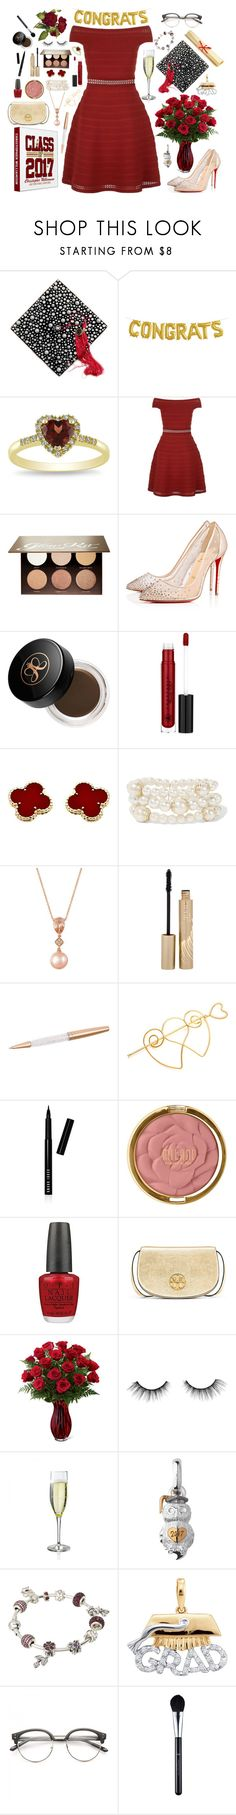 """""""Graduation Party"""" by hanolaughter ❤ liked on Polyvore featuring Miadora, Sandro, Anastasia Beverly Hills, Christian Louboutin, Van Cleef & Arpels, Kenneth Jay Lane, LE VIAN, Stila, Swarovski and Bobbi Brown Cosmetics"""